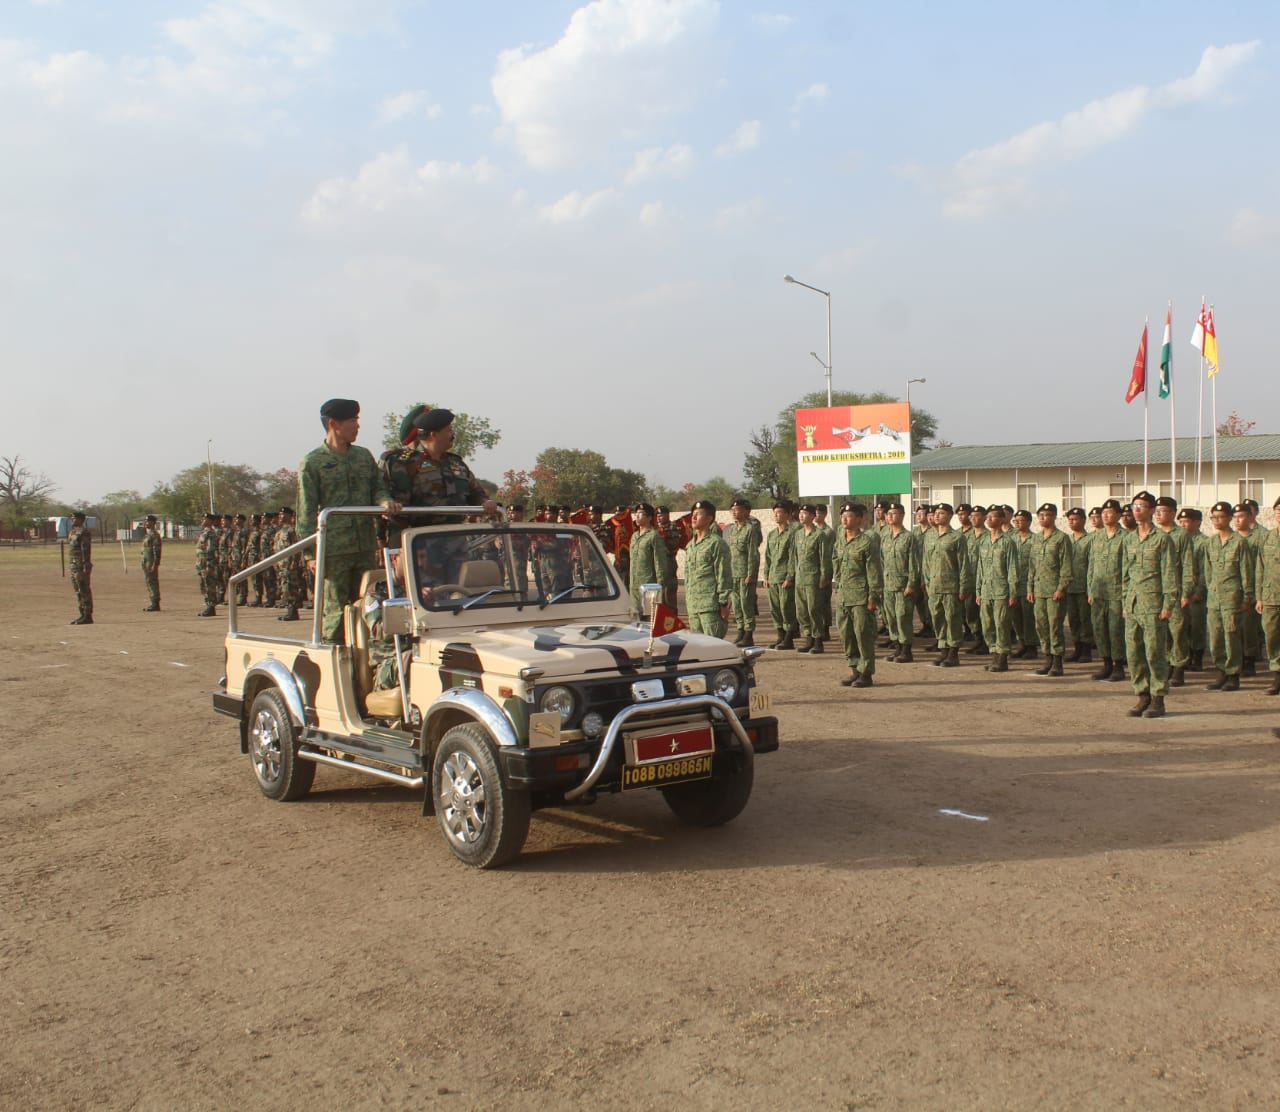 Brigade Commanders conducting joint review of the parade at the opening ceremony of India-Singapore joint army exercise at Babina Military station. Photo courtesy: Ministry of Defence, India